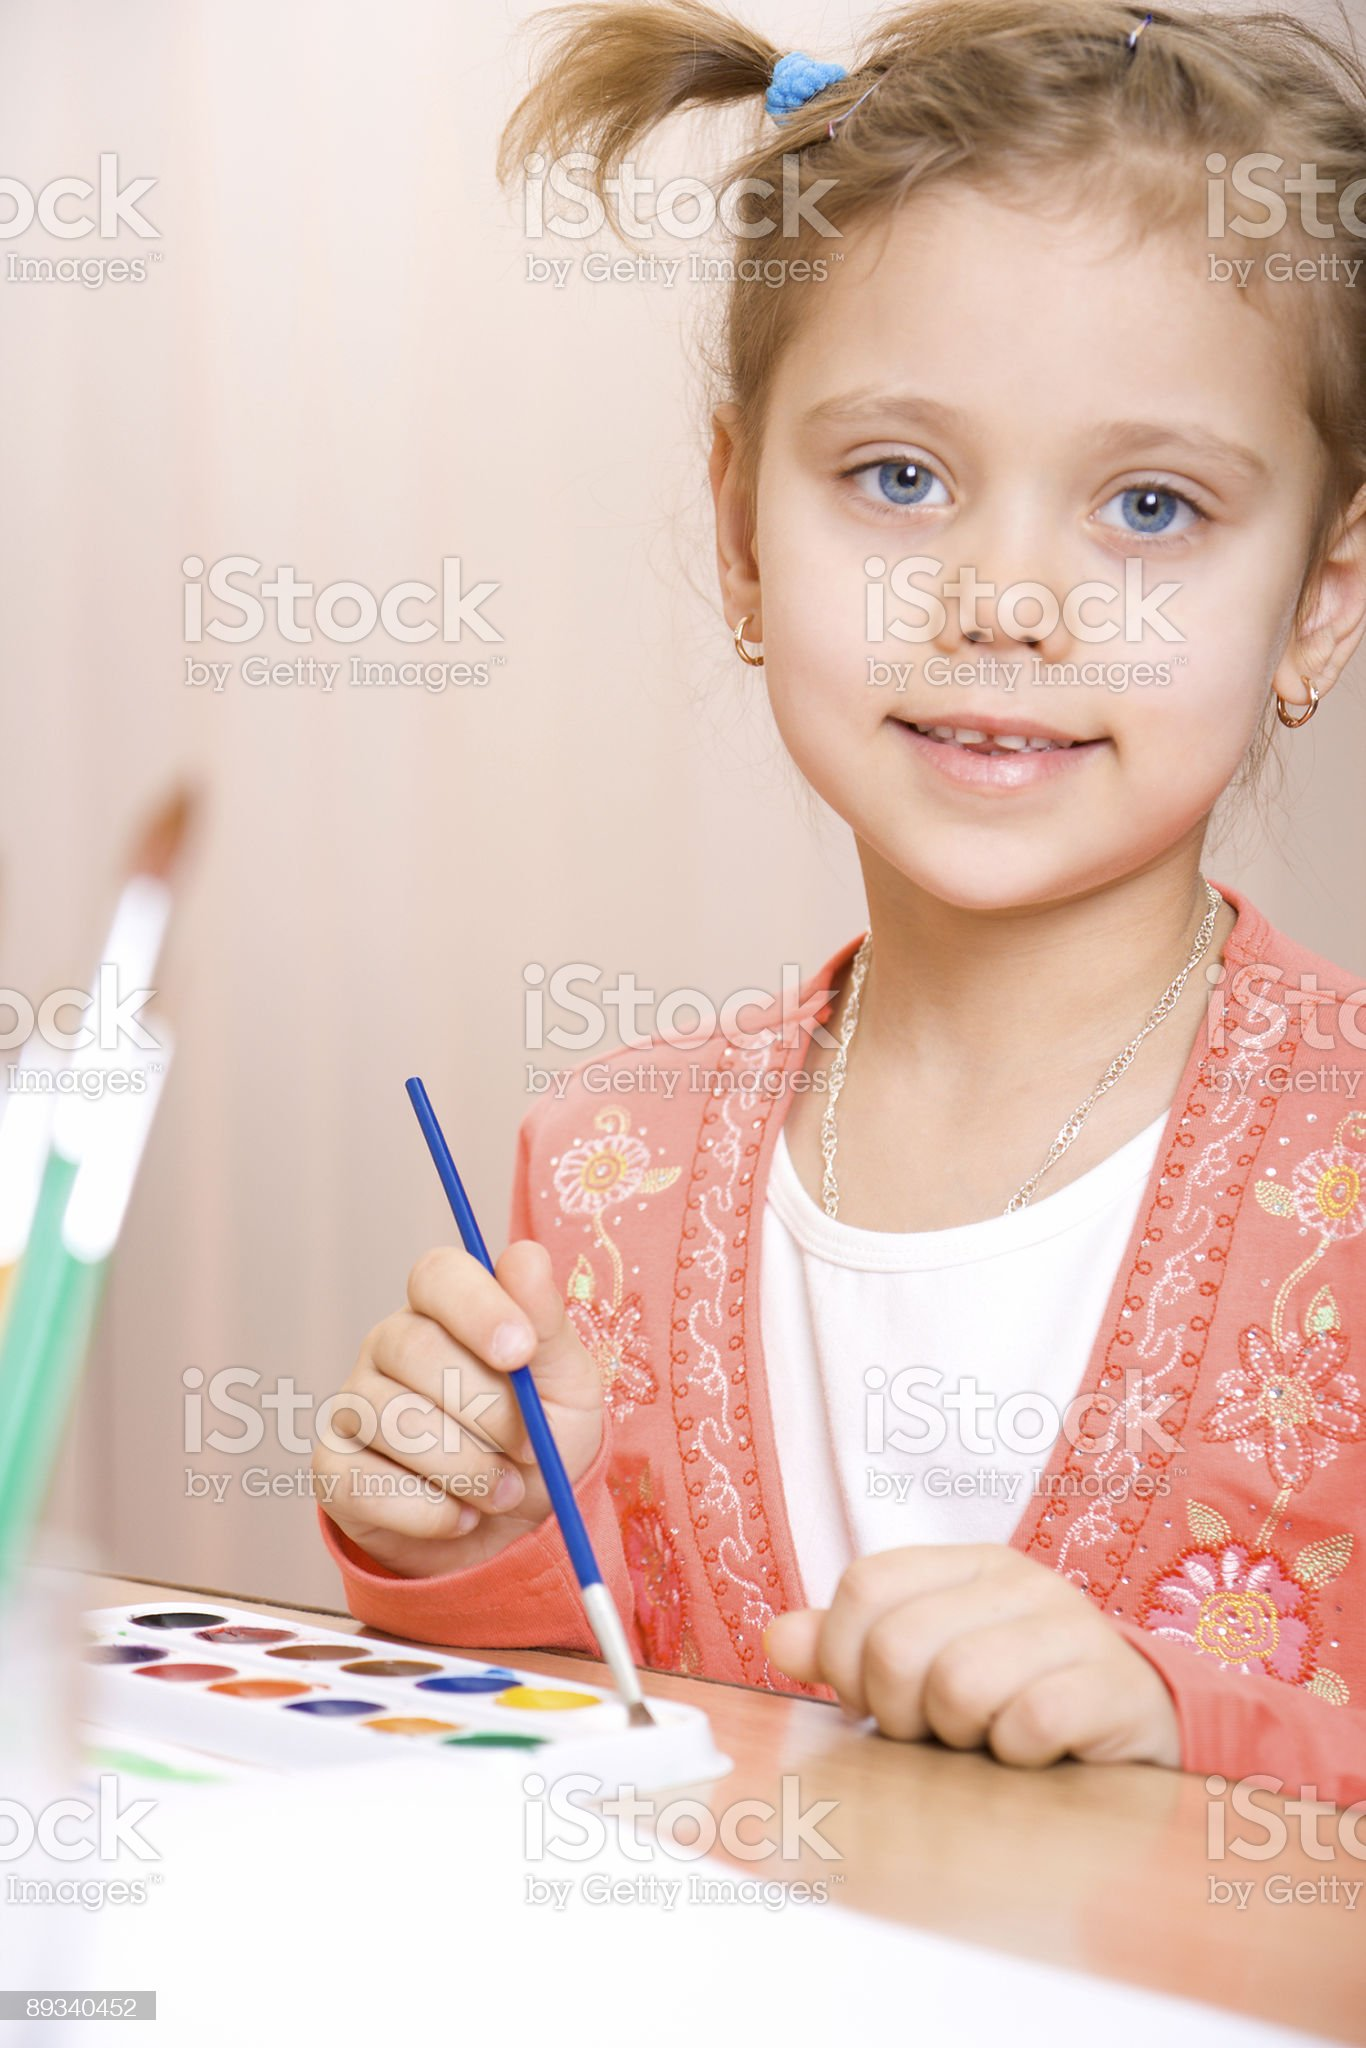 Pretty caucasian girl watercolor paint and look in camera royalty-free stock photo